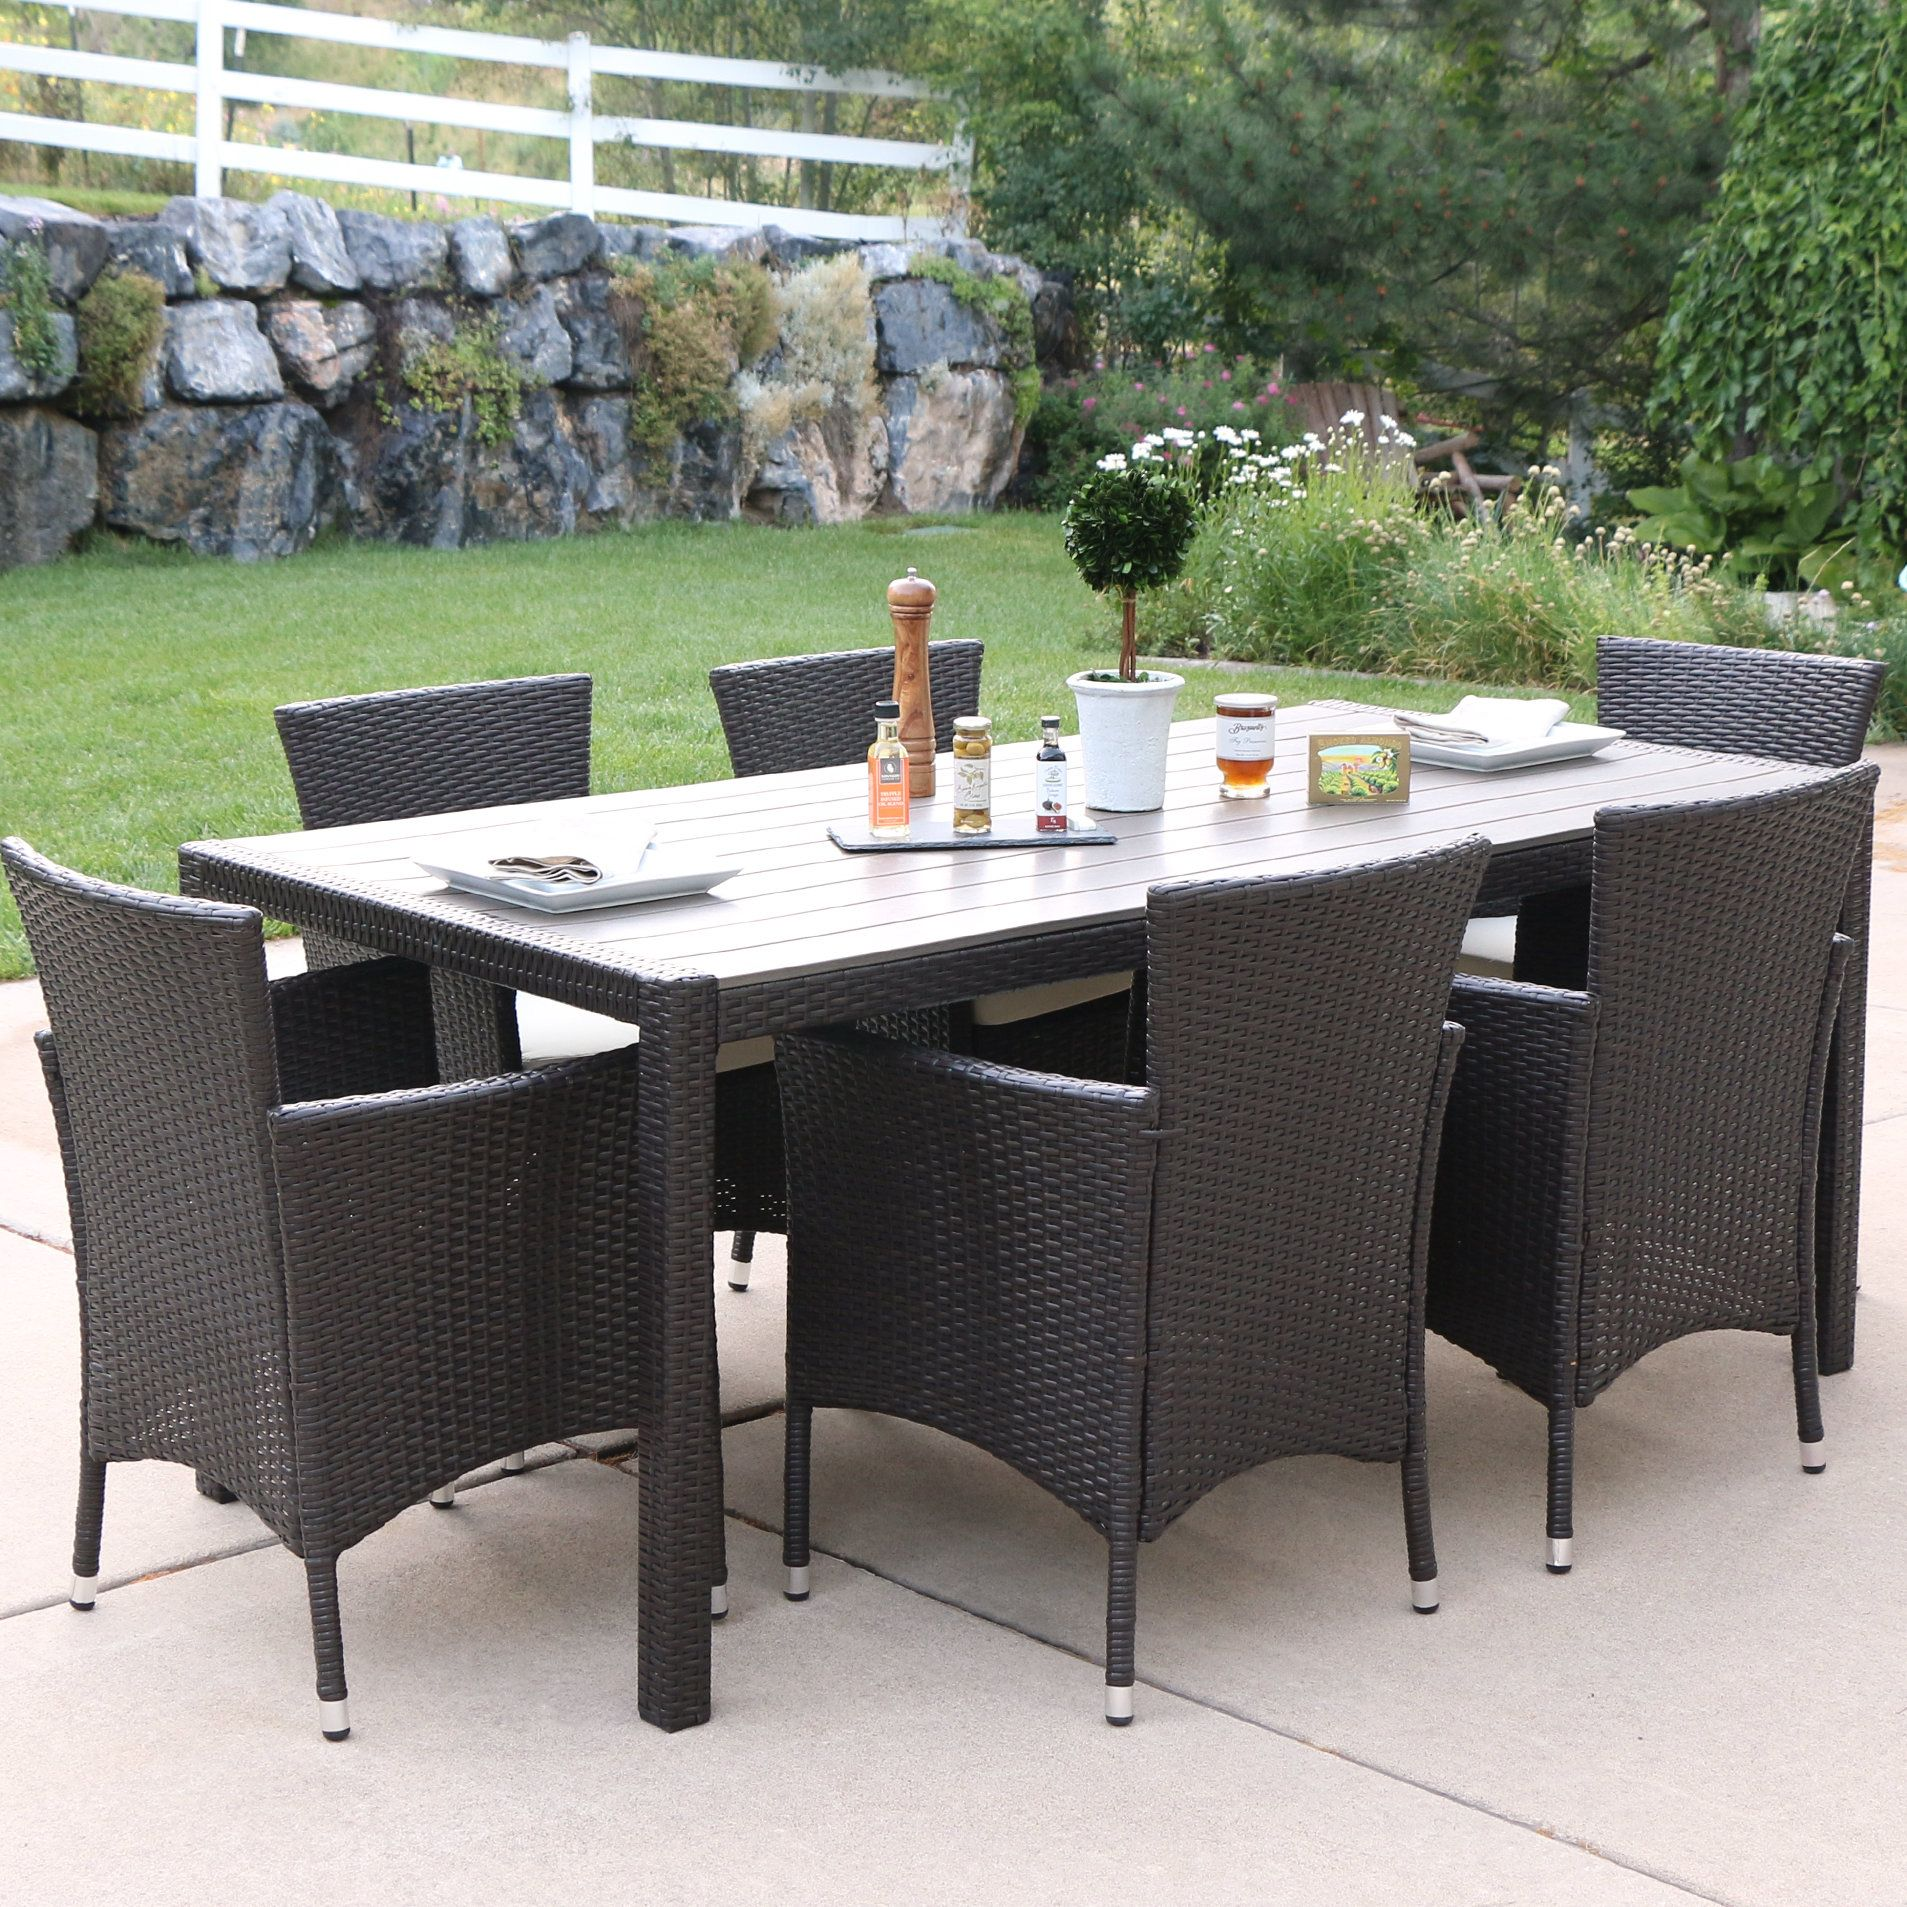 oswilier rattan patio 7 piece dining set with cushions products rh pinterest com